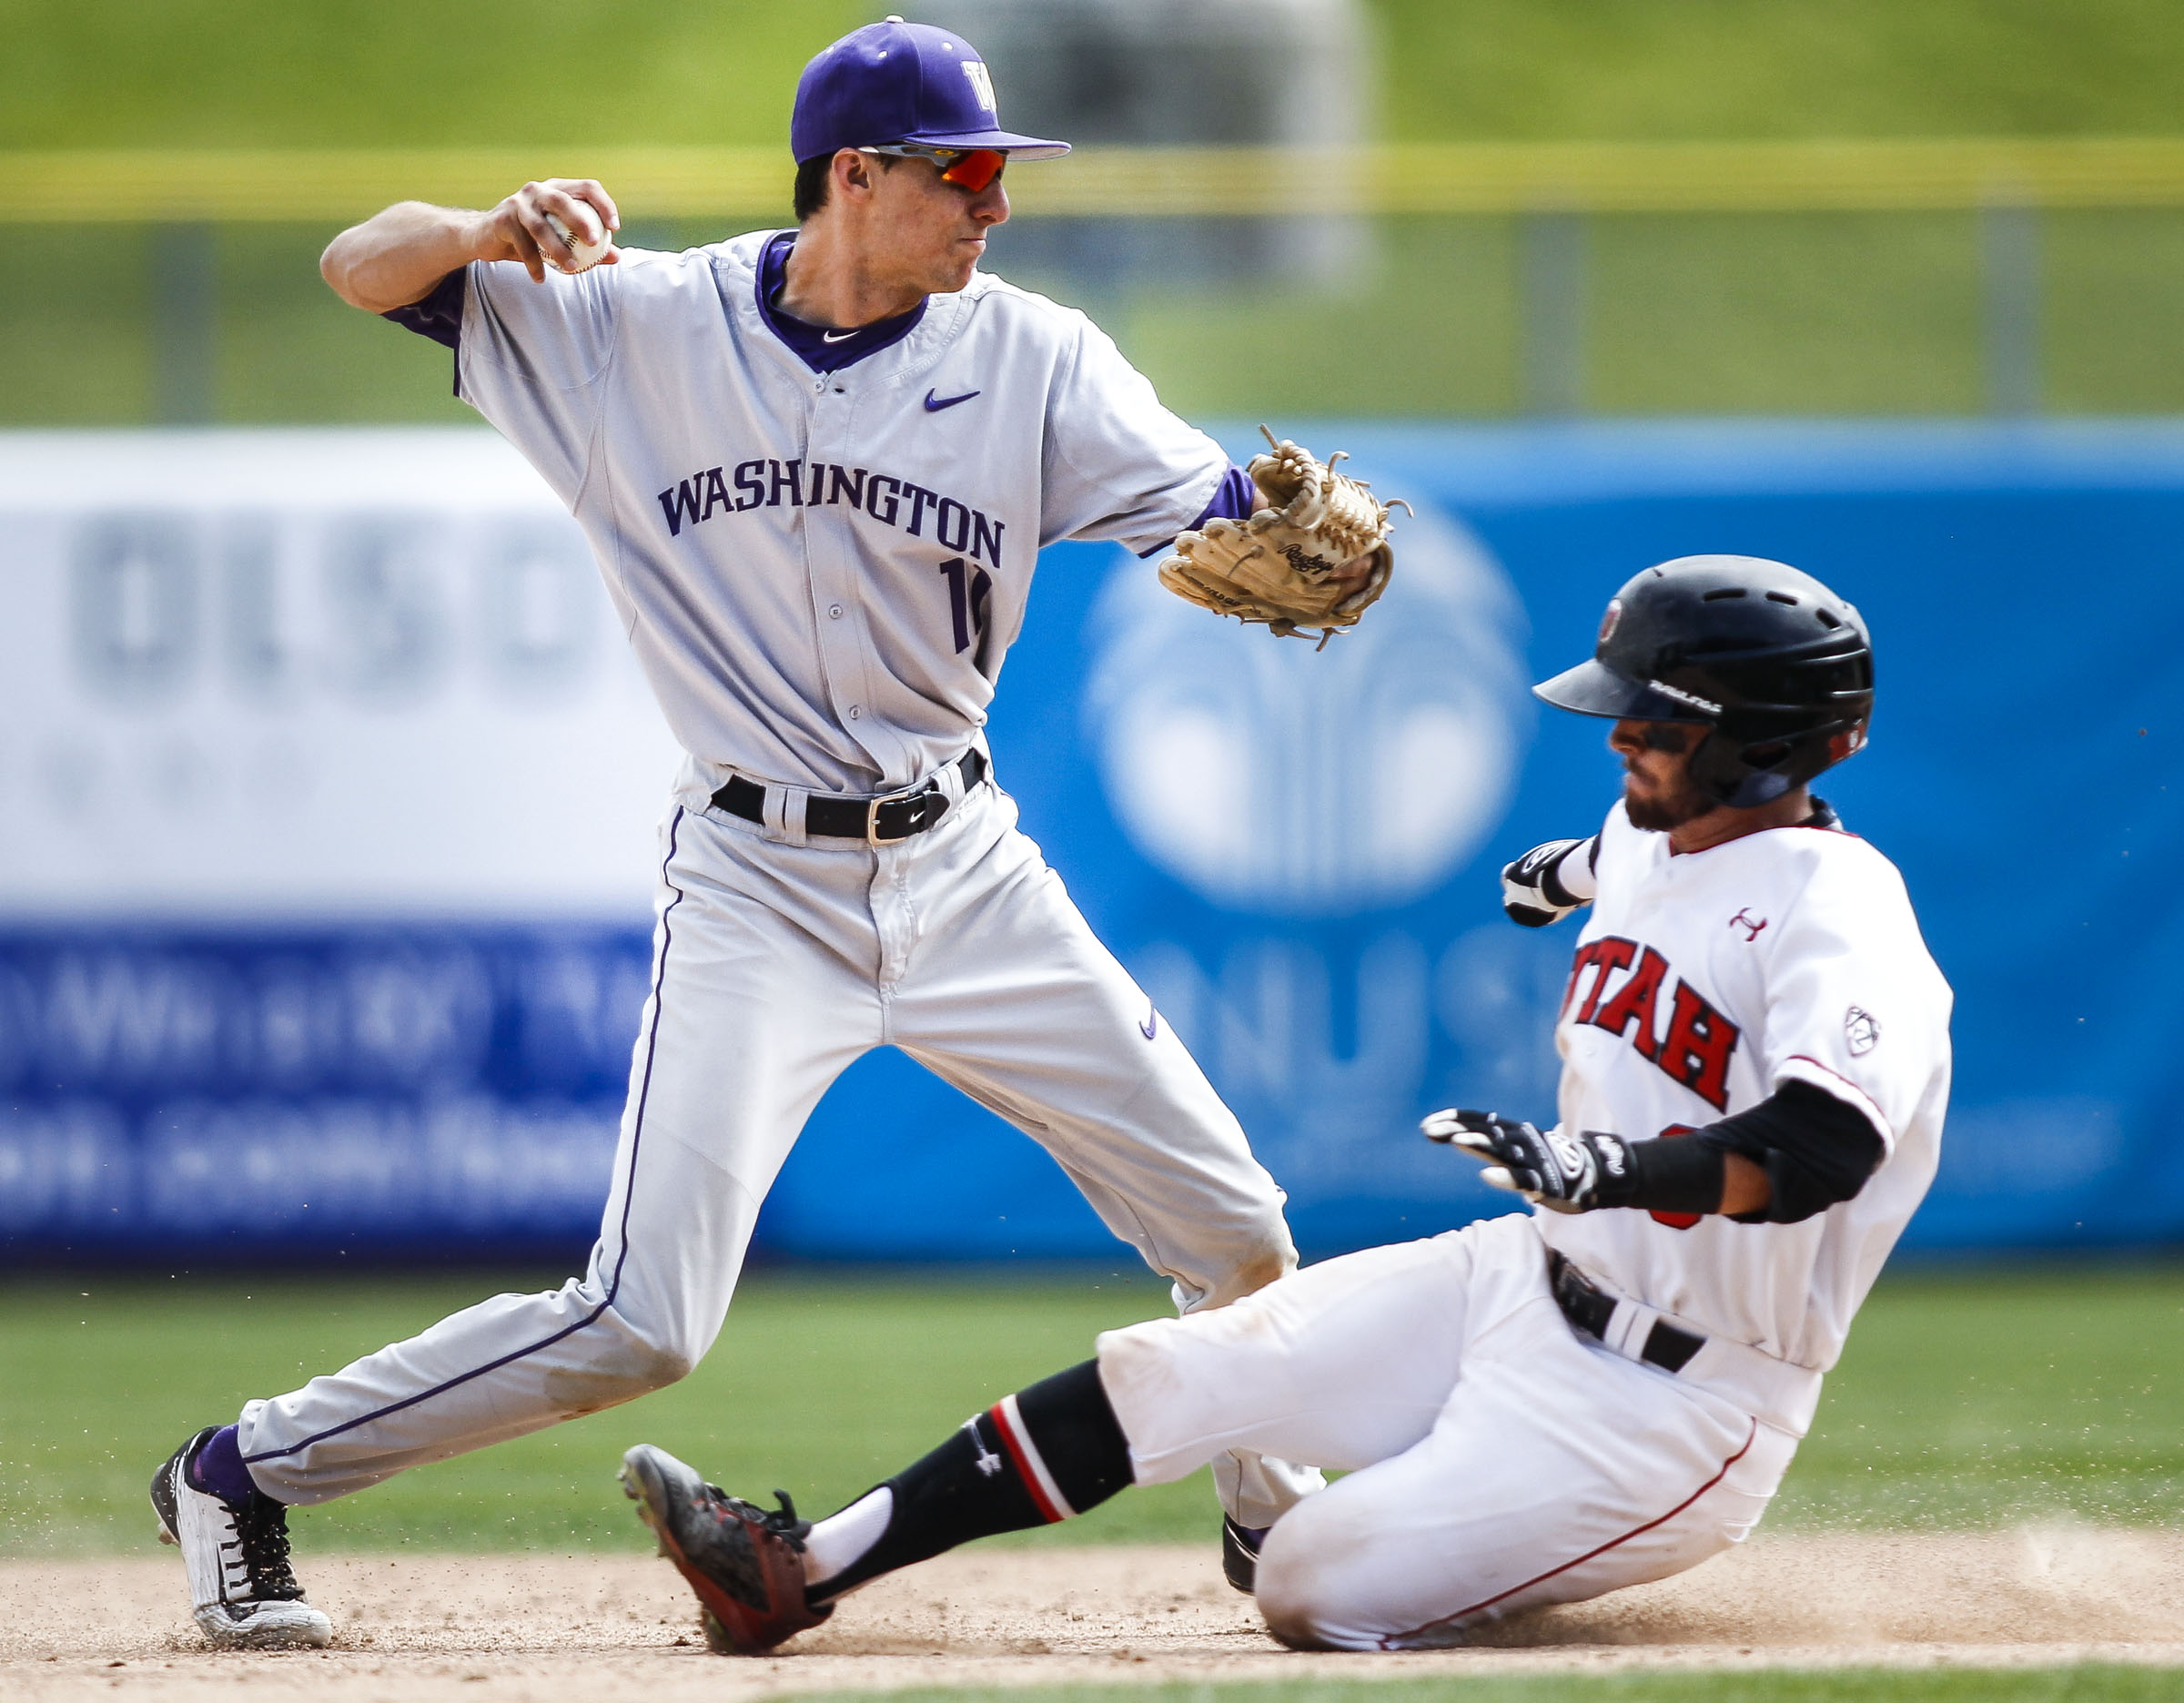 Washington Huskies AJ Graffanino (11) throws the ball to first base causing two outs in one play during the Pac-12 baseball championship three-game series against the Utah Utes at Smith's Ballpark in Salt Lake City, Friday, May 27, 2016. The Huskies defeated the Utes 5-4.